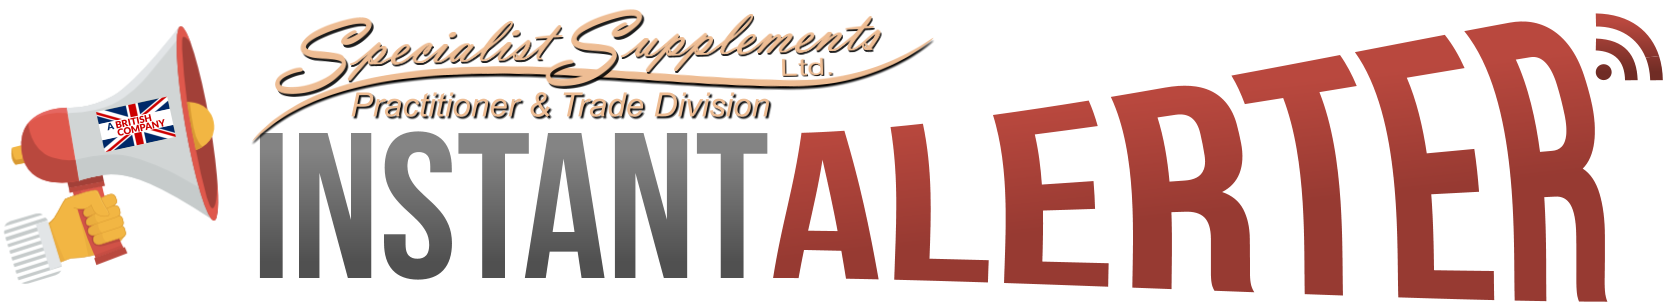 Specialist Supplements (Trade Division)